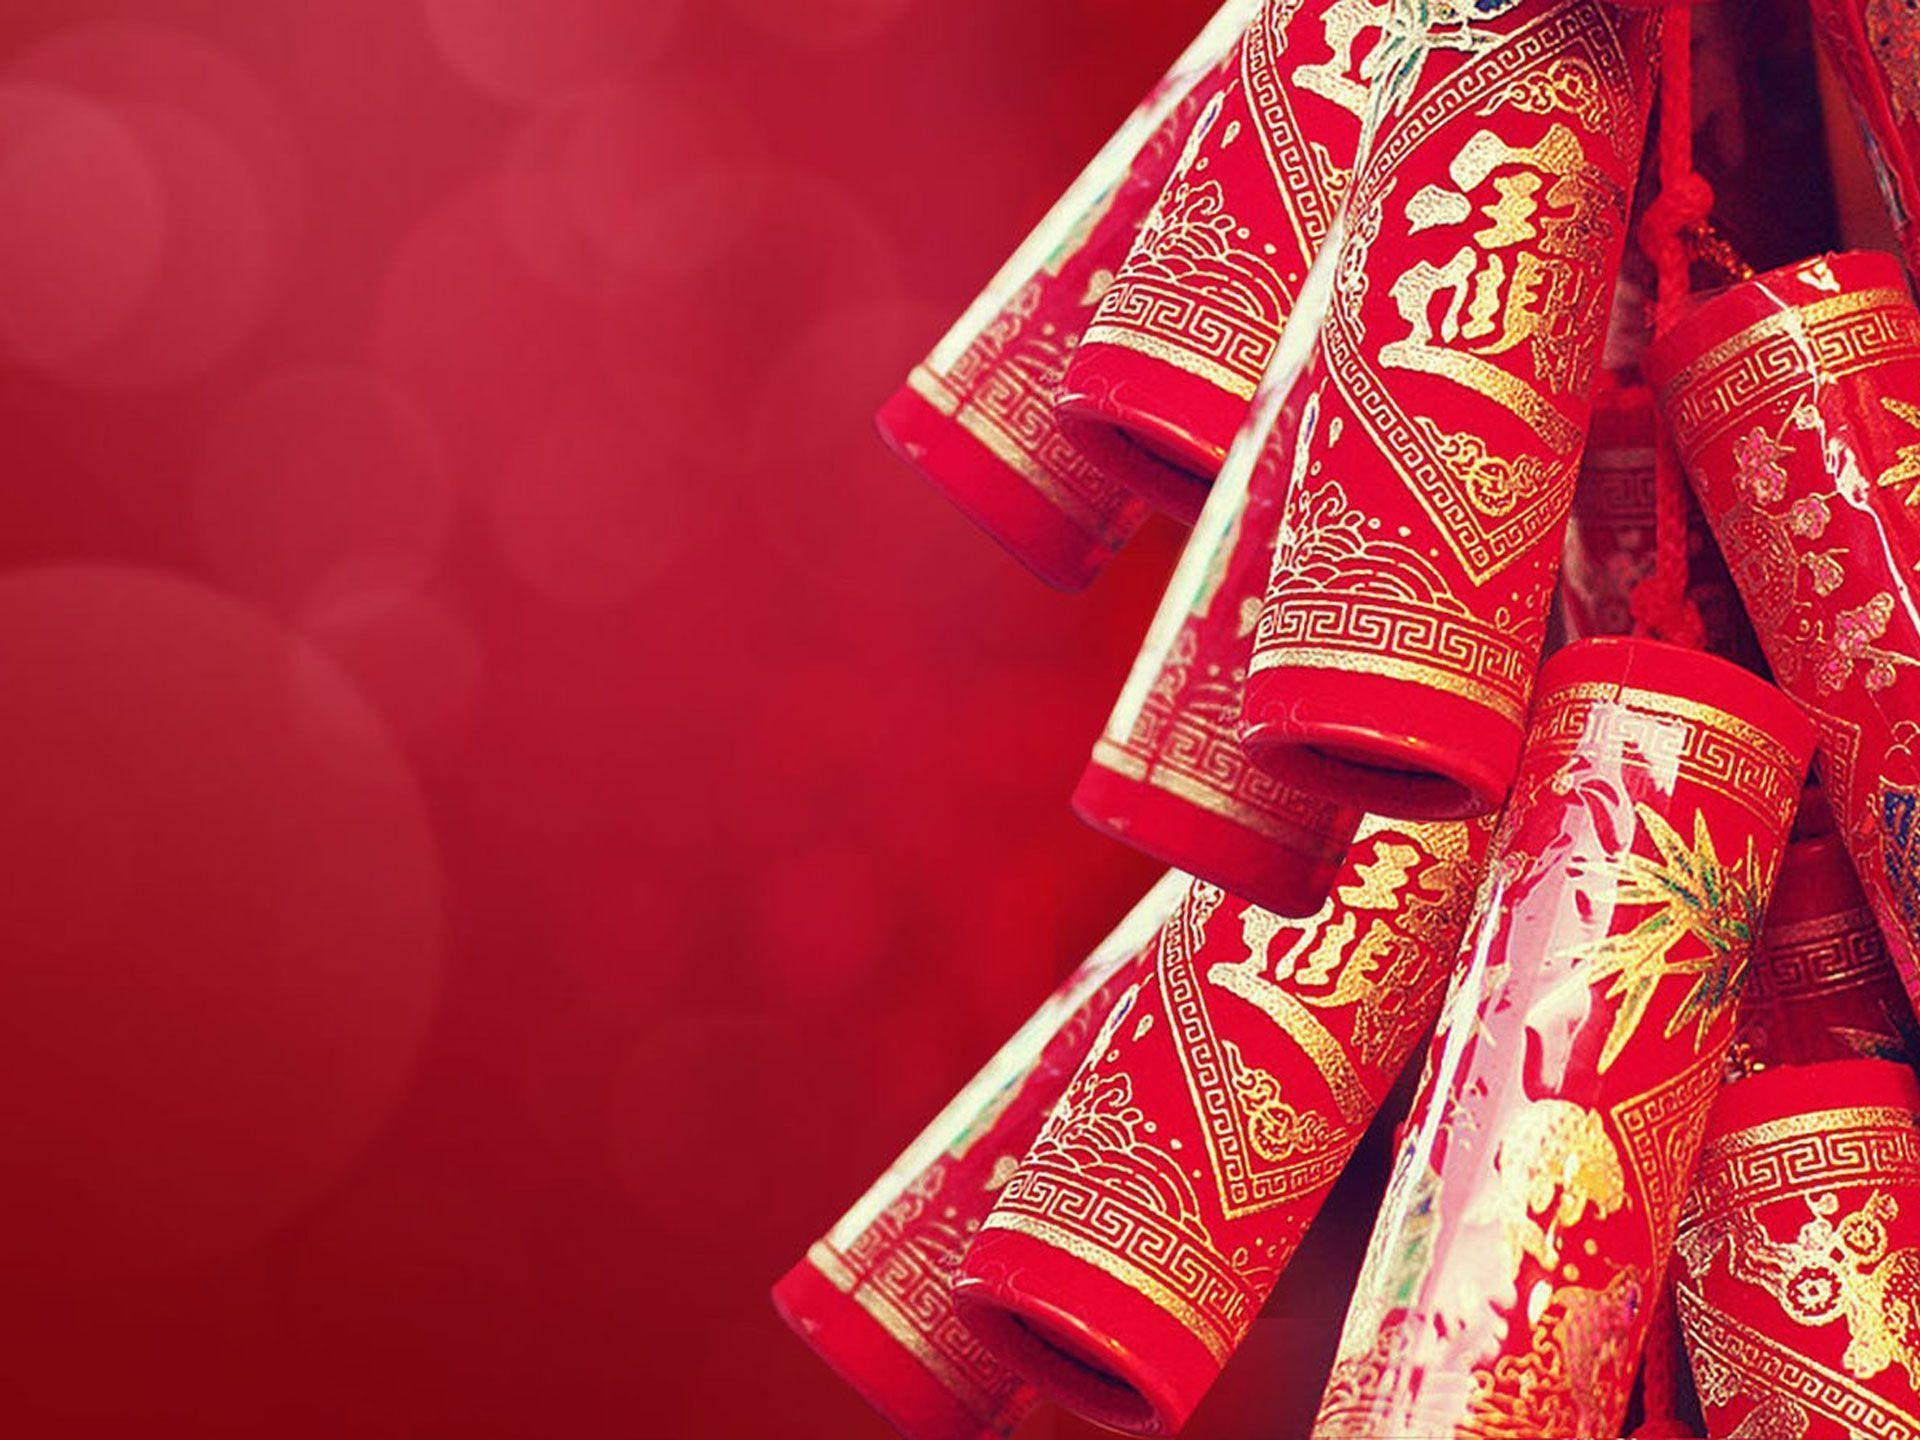 Chinese New Year Wallpaper HD | HD Wallpapers, Backgrounds, Images ...